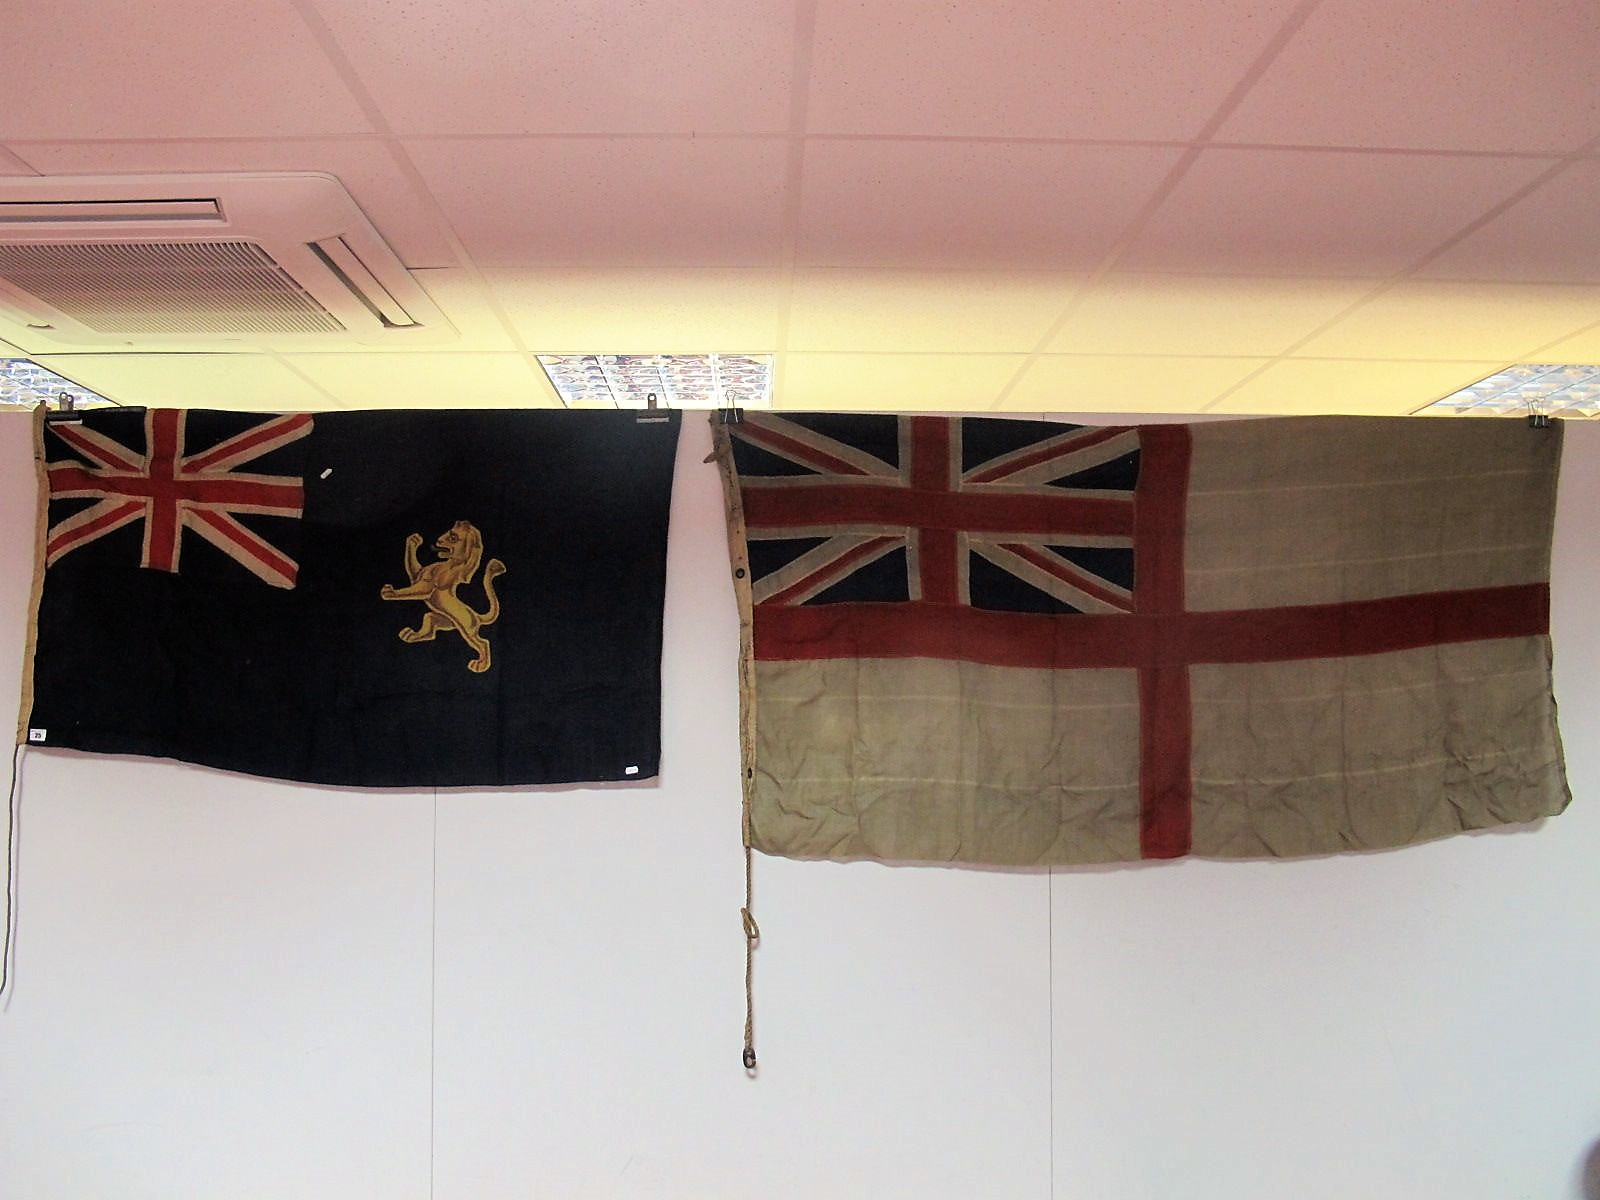 Lot 25 - A Royal Navy White Ensign, 87 x 170cm, and a blue ensign with golden lion, 75cm by 130cm.